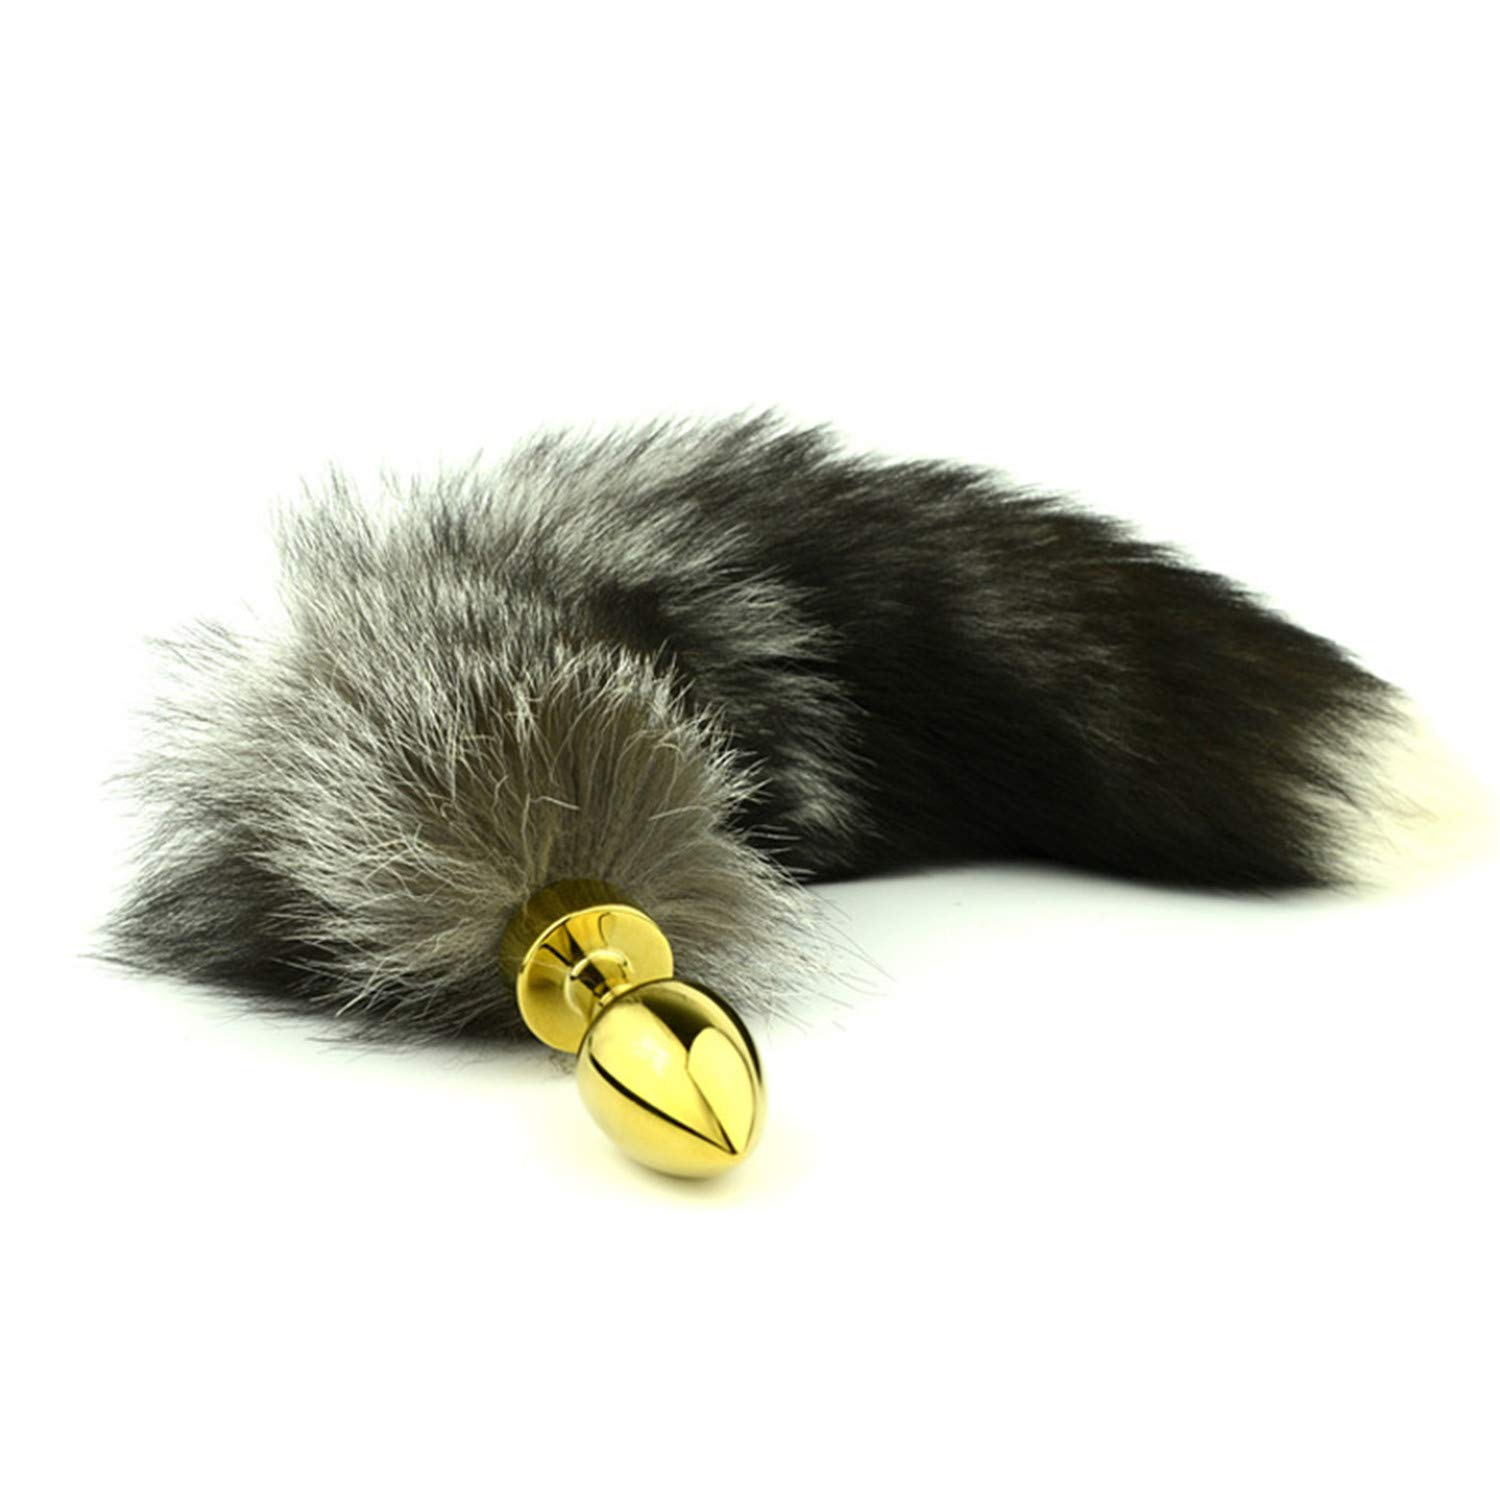 20b6df841f3 Amazon.com  PINGMINDIAN Wonderful Gold Anal Plug Stainless Steel Butt Plug  Cat Tail Anal Plug Faux Fox Tail Cosplay Anal Sex Toys Metal Butt Plug Dog  Tail  ...